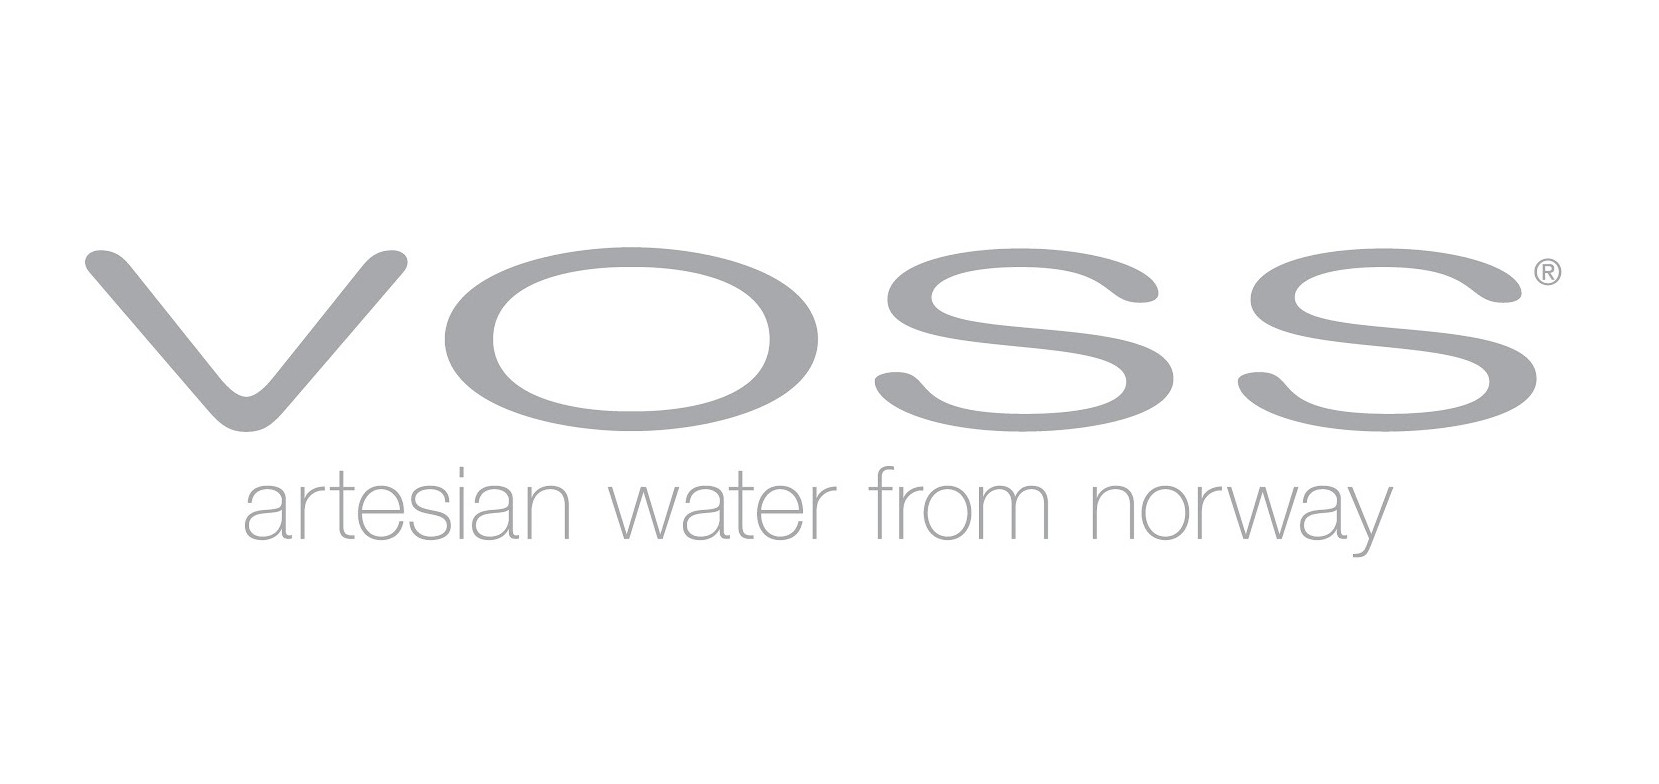 voss asian personals Our network of milfs women in voss is the perfect place to make friends or find a milf voss gay personals | voss lesbian personals | voss asian dating.